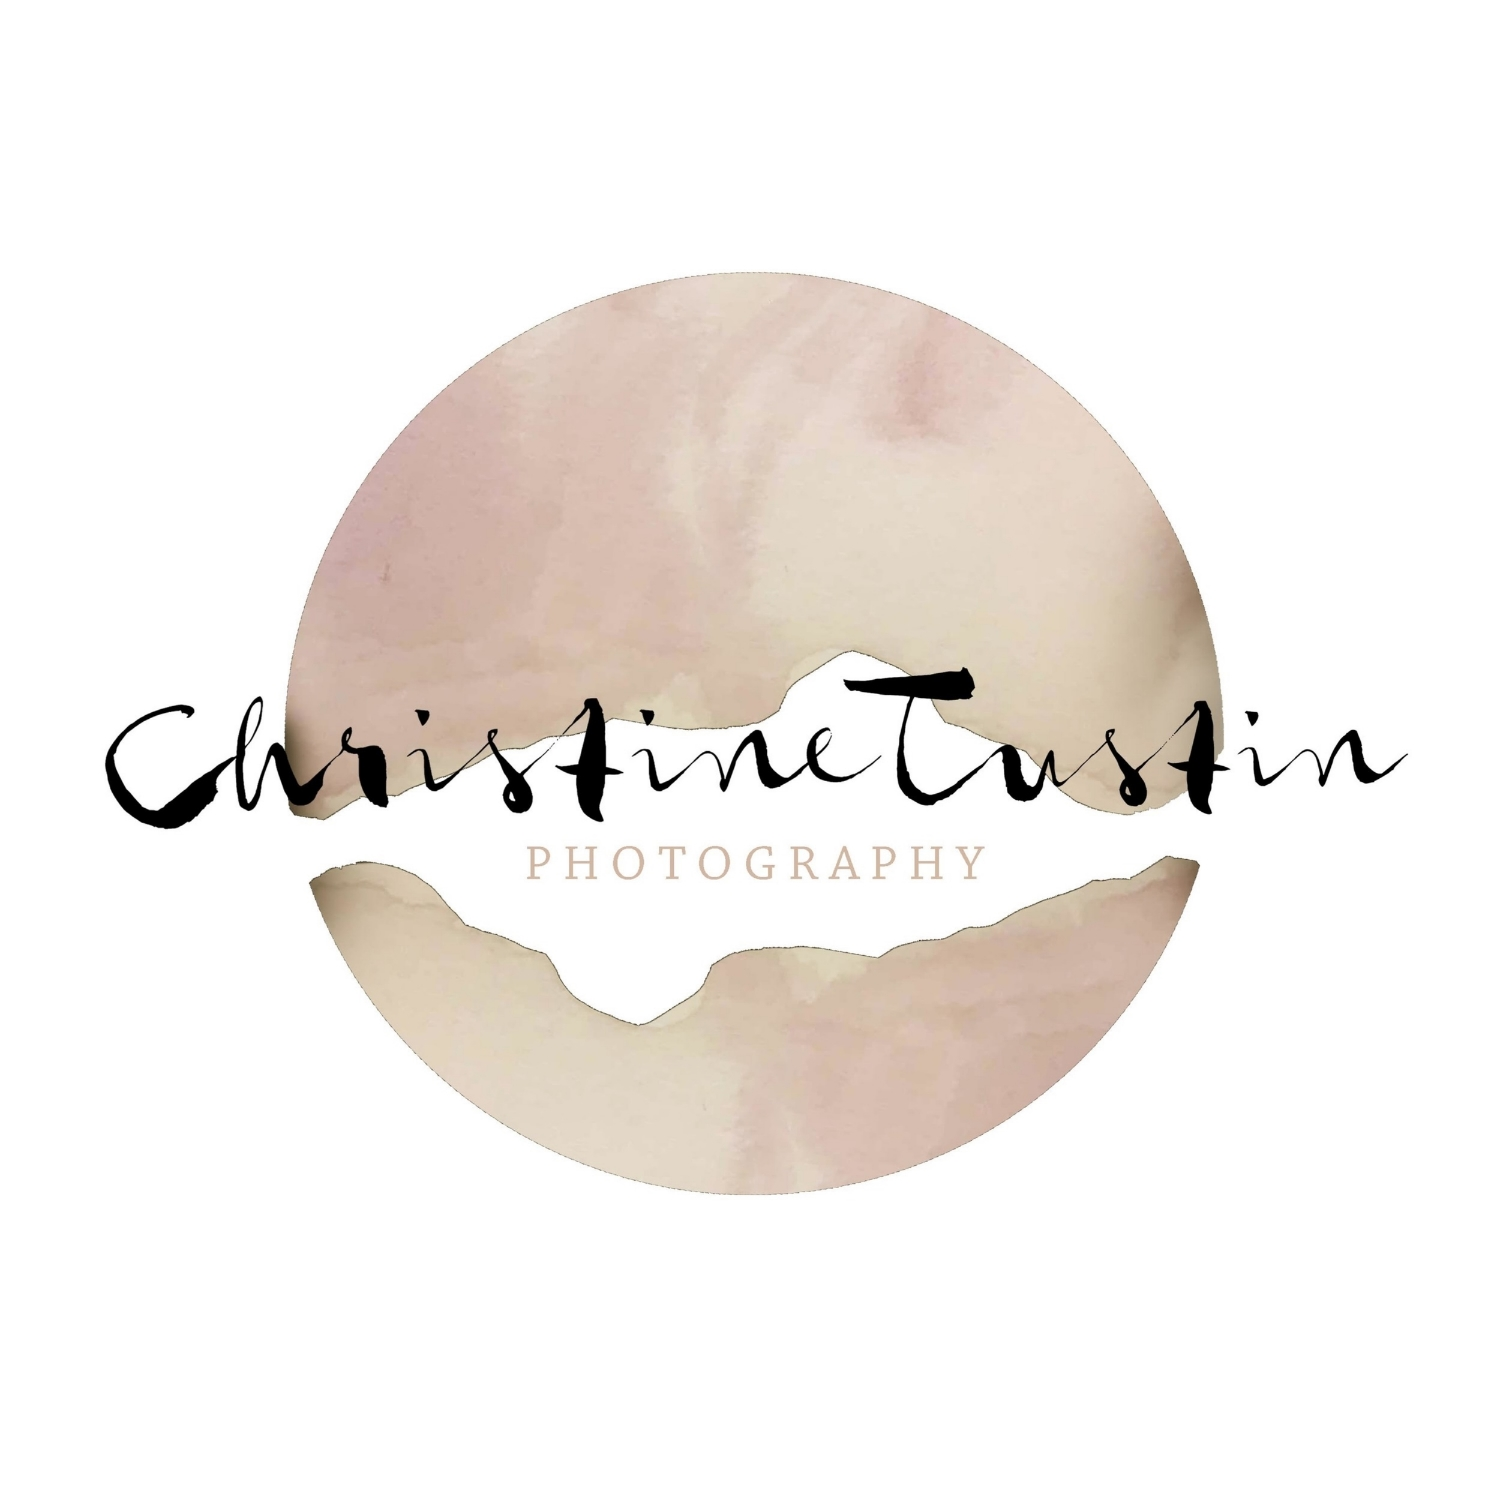 Christine Tustin Photography